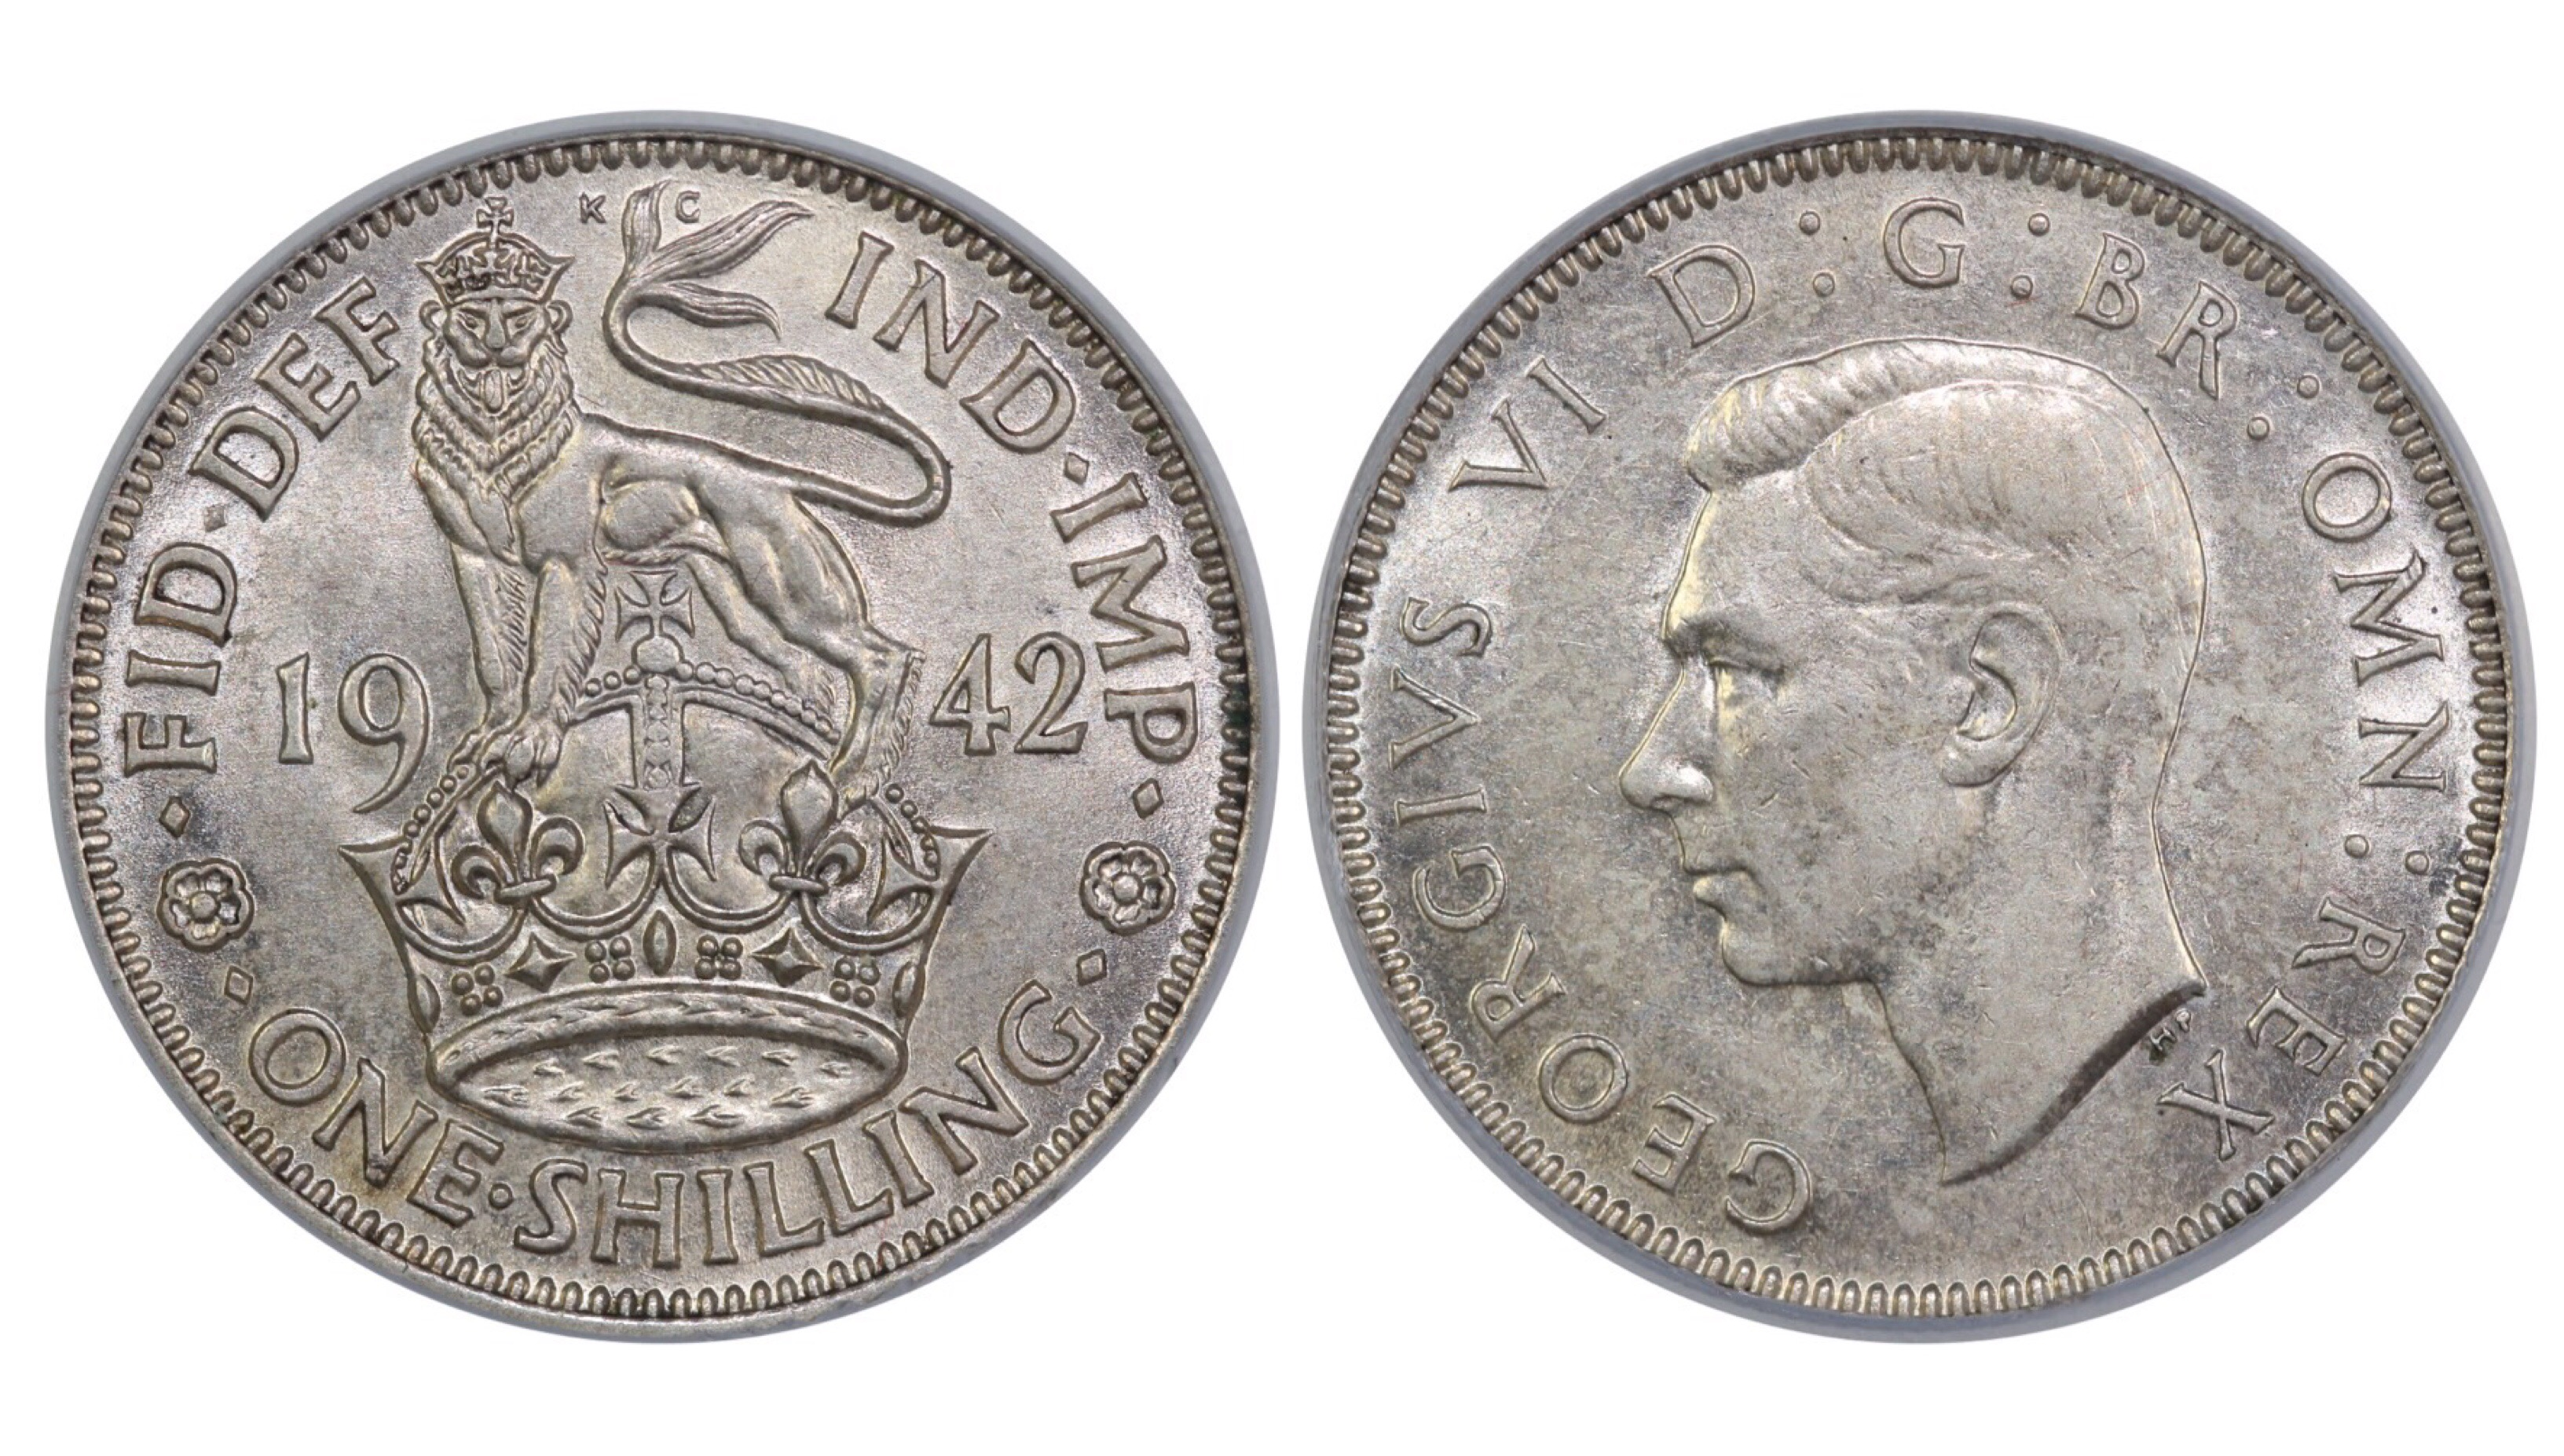 1942 'English' Shilling, CGS 70, ESC 1462, UIN 21661